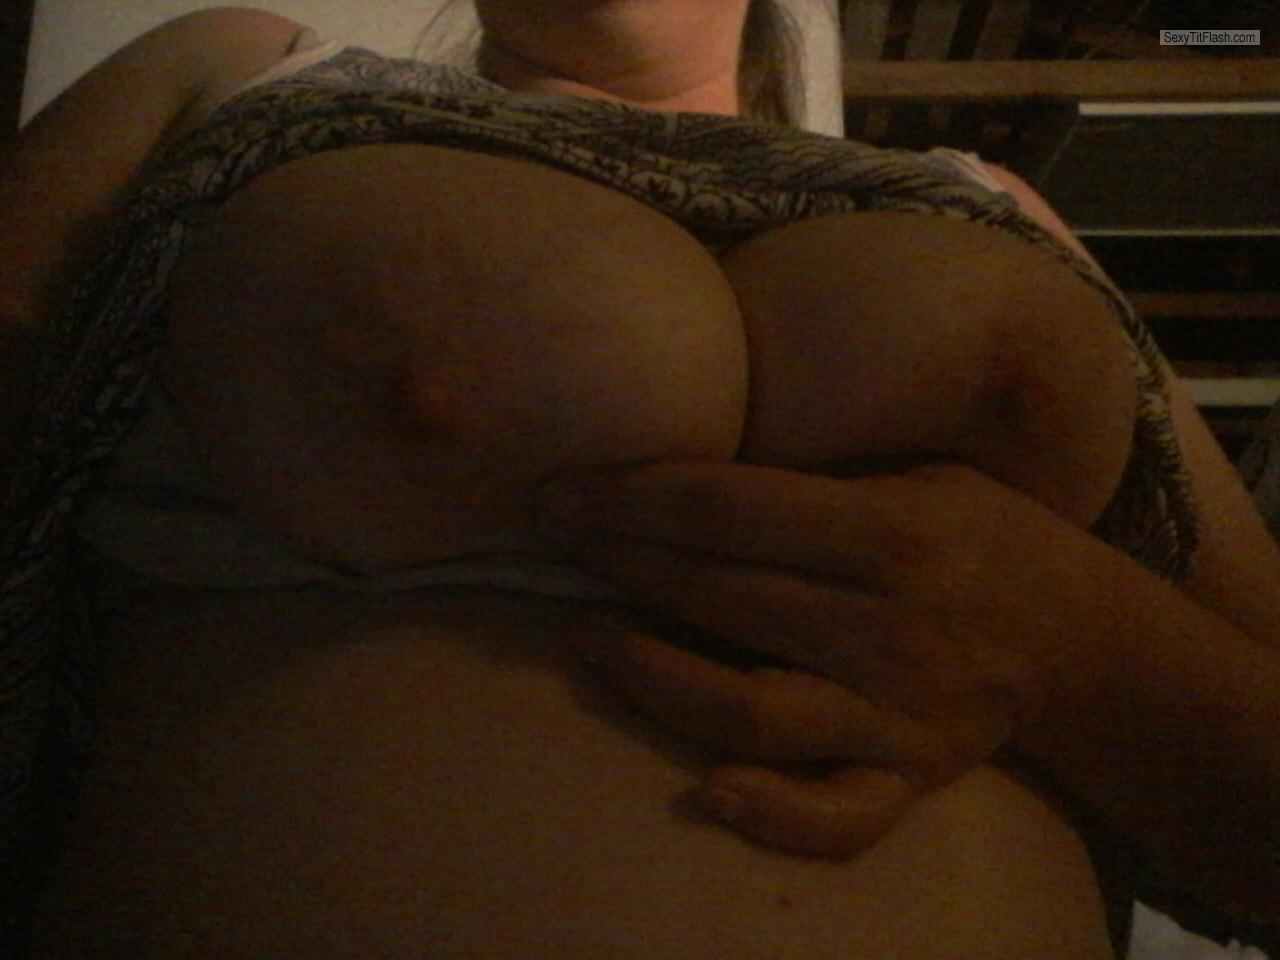 My Very small Tits Selfie by Shysexydd